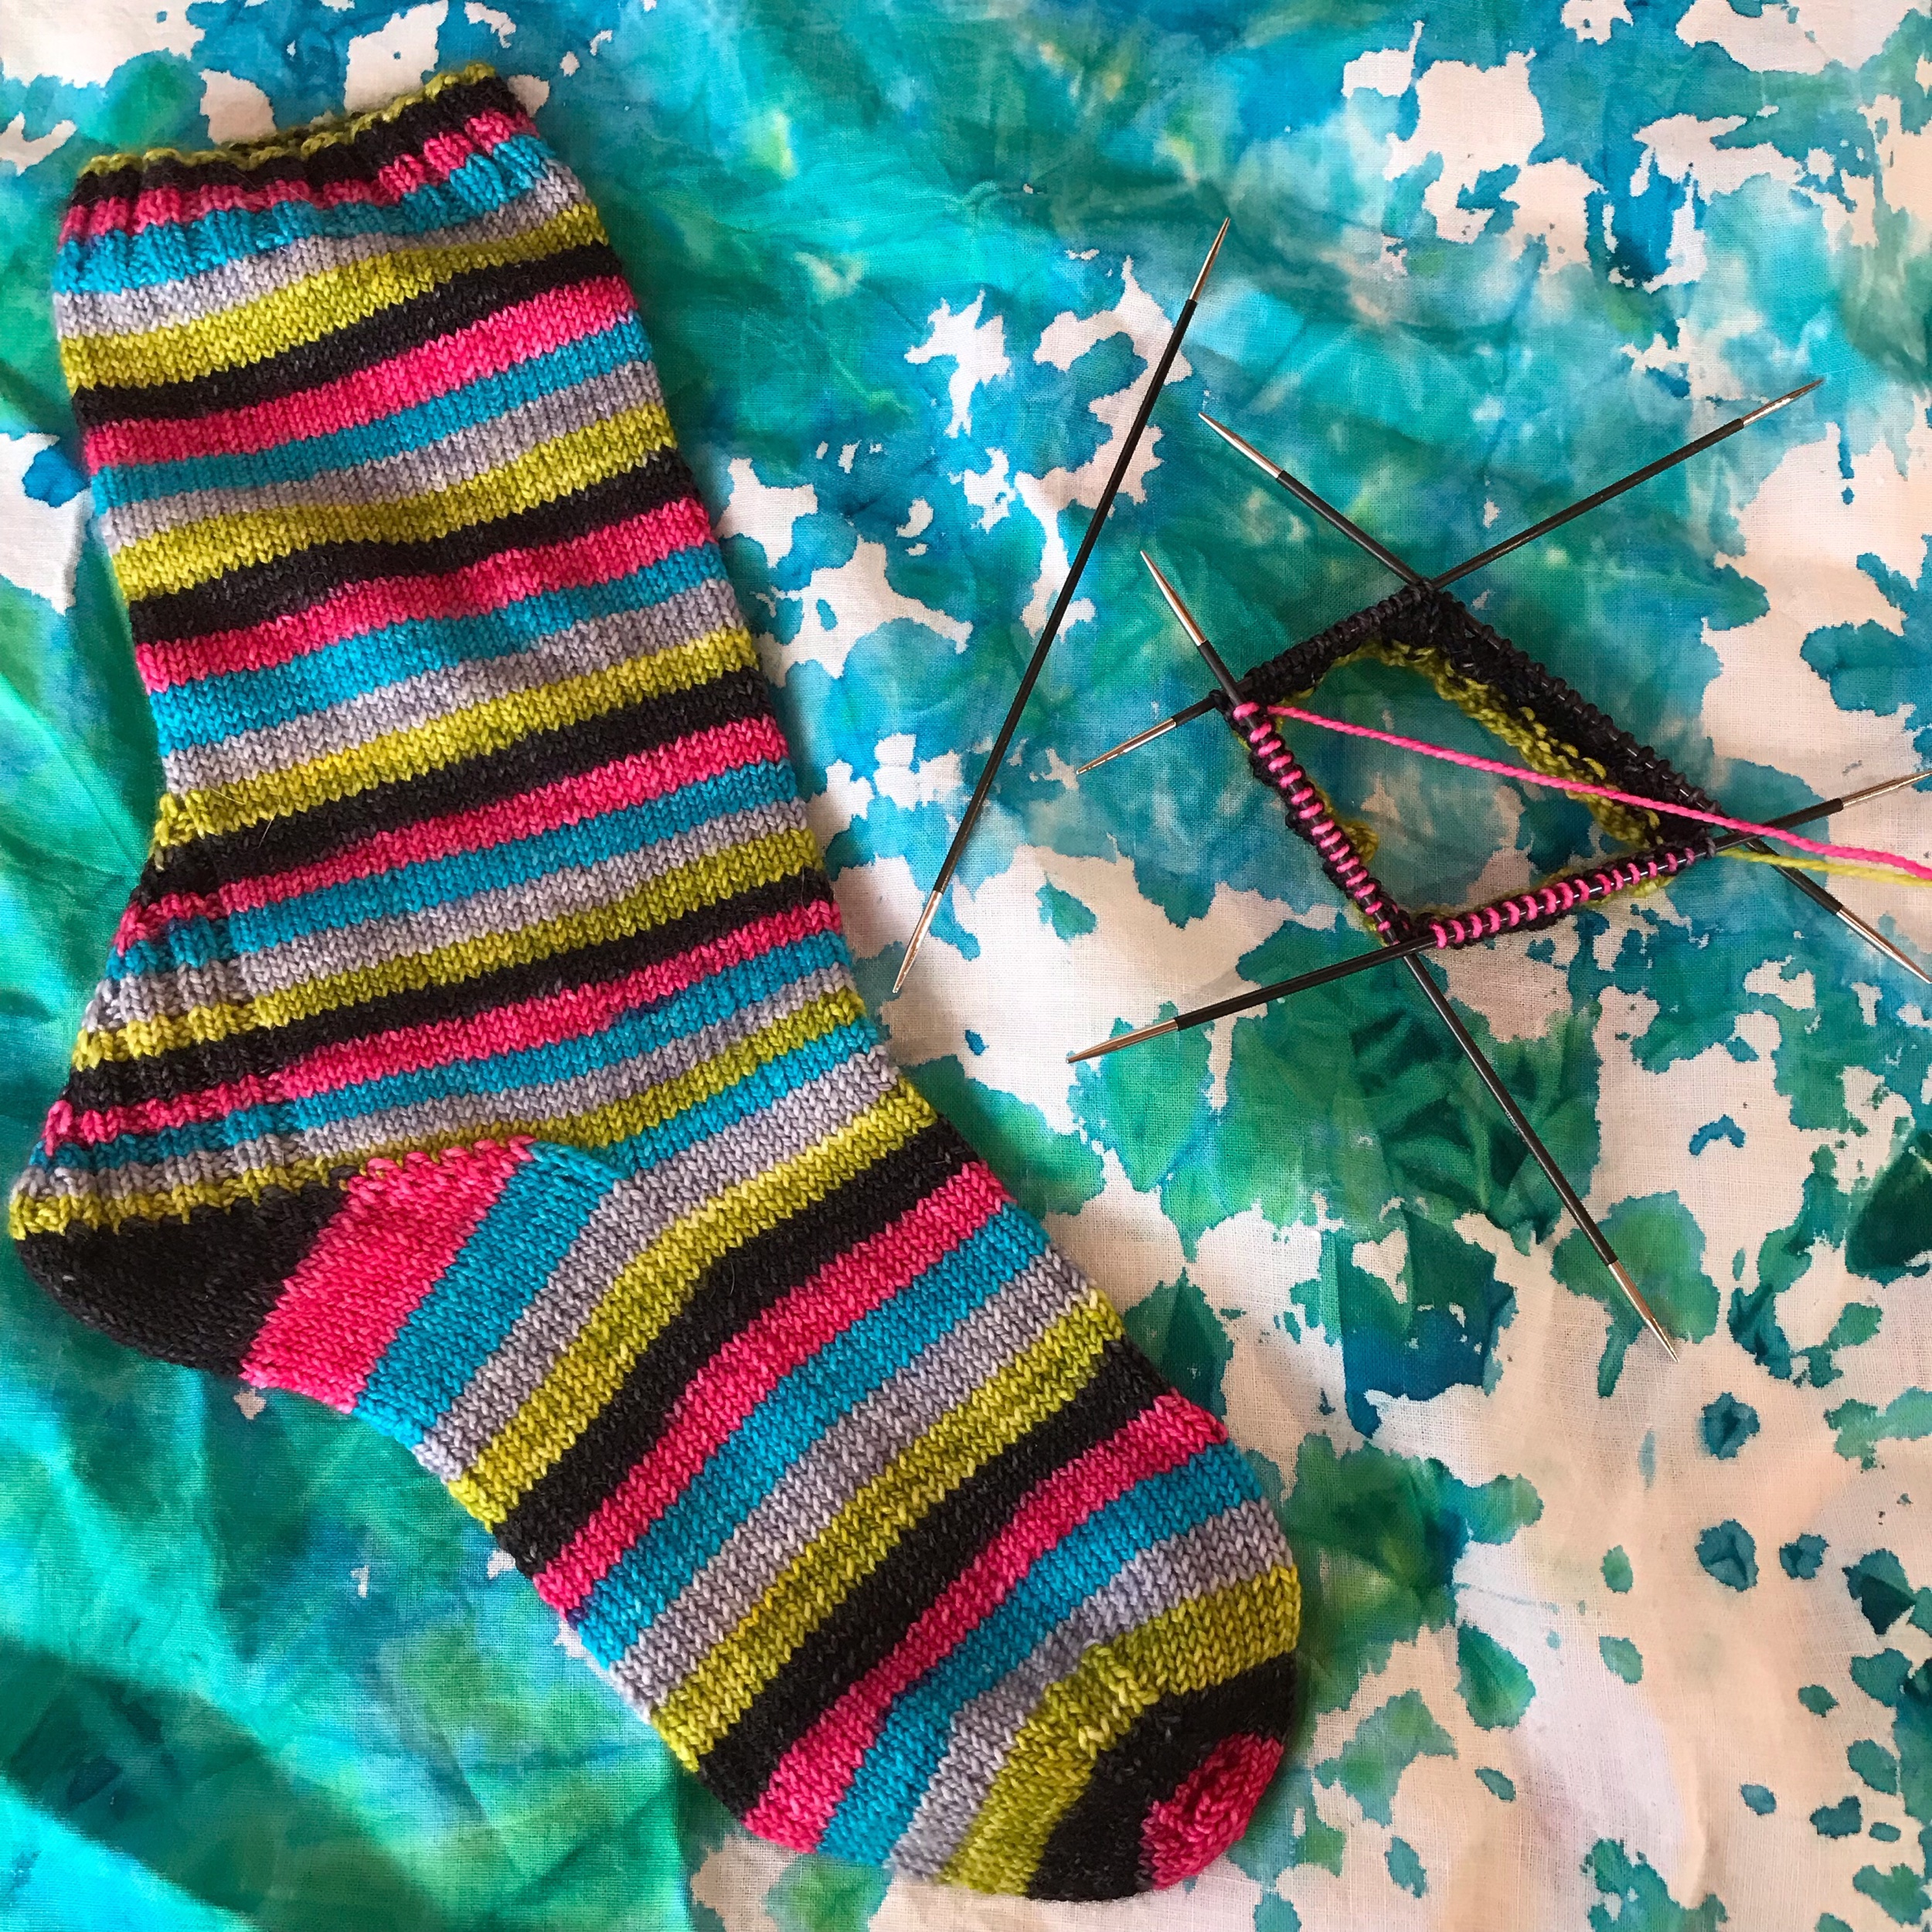 CURRENT CLASSES & EVENTS - Project CircleAugust 30, 5:00-7:00pm | no chargeJoin us to work on your longer term projects!September Sock ClubSeptember 6, 13, 20, 5:00-7:00pm | no chargeFriday night sock knitting—whether you've knit dozens of pairs or are just getting started. This is not a formal class, but if you've never knit a sock before, we've got suggestions for several beginner-friendly patterns, and help will be available.Oh Gnome You Didn't!September 11, 18, 25, 5:00-7:00pm | no chargeSarah Schira's gnomes are delightful tiny knitting projects, and Oh Gnome You Didn't is her upcoming mystery knitalong. In these sessions, we'll work on all clues released to day, meeting for the last time the day before the final clue drops. Pattern calls for fingering weight yarn; choose DK for a larger finished gnome.